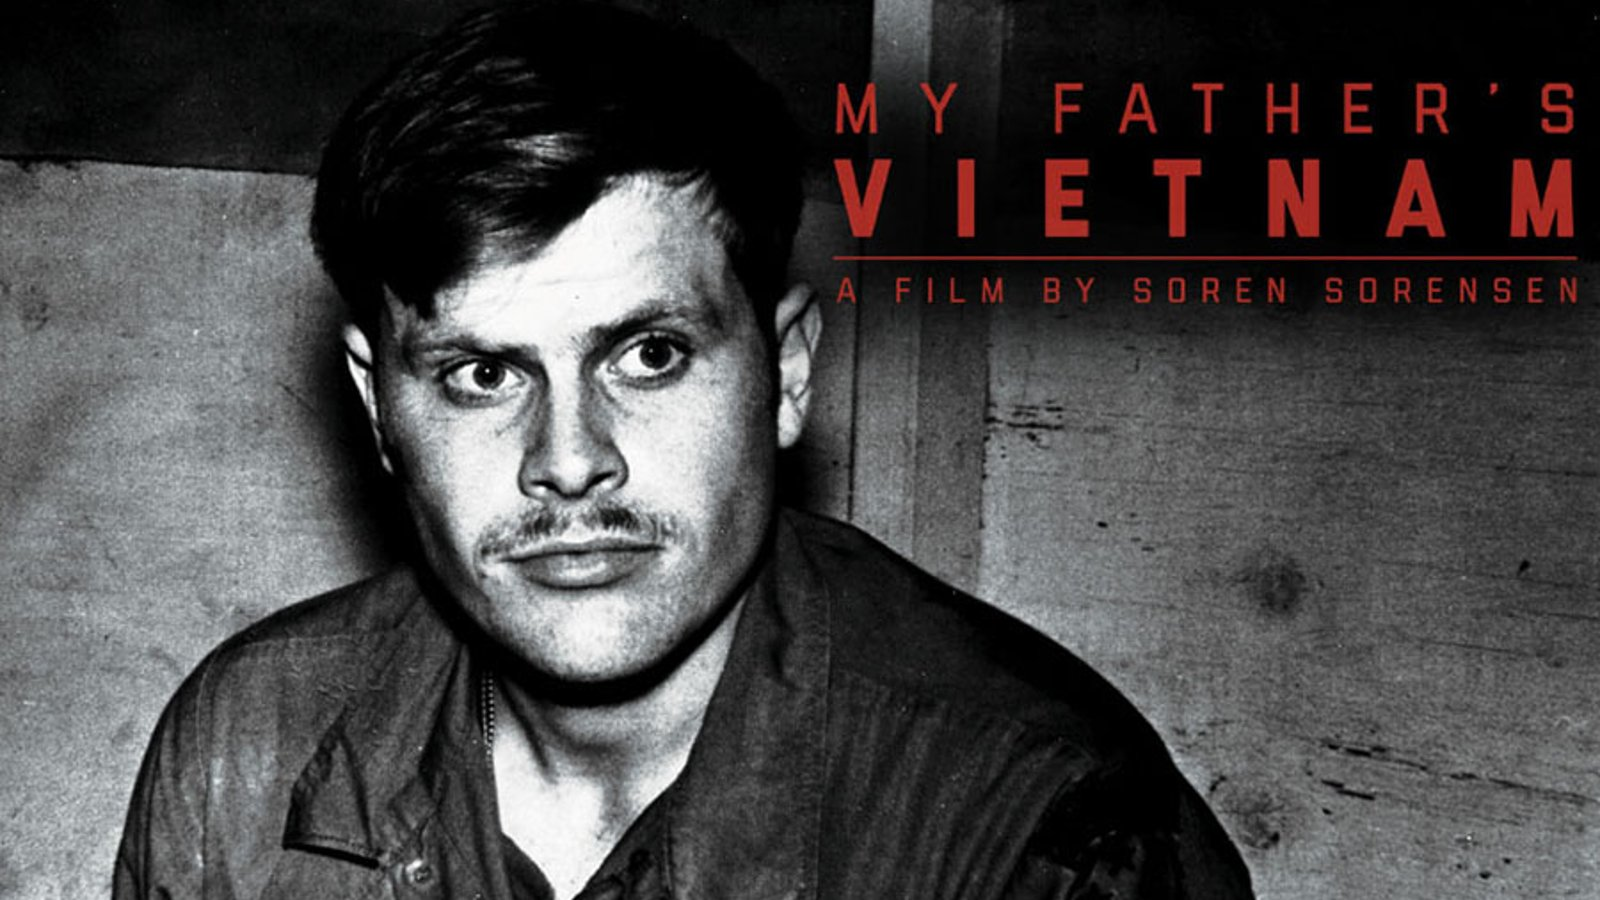 My Father's Vietnam - The Psychological Burdens of War